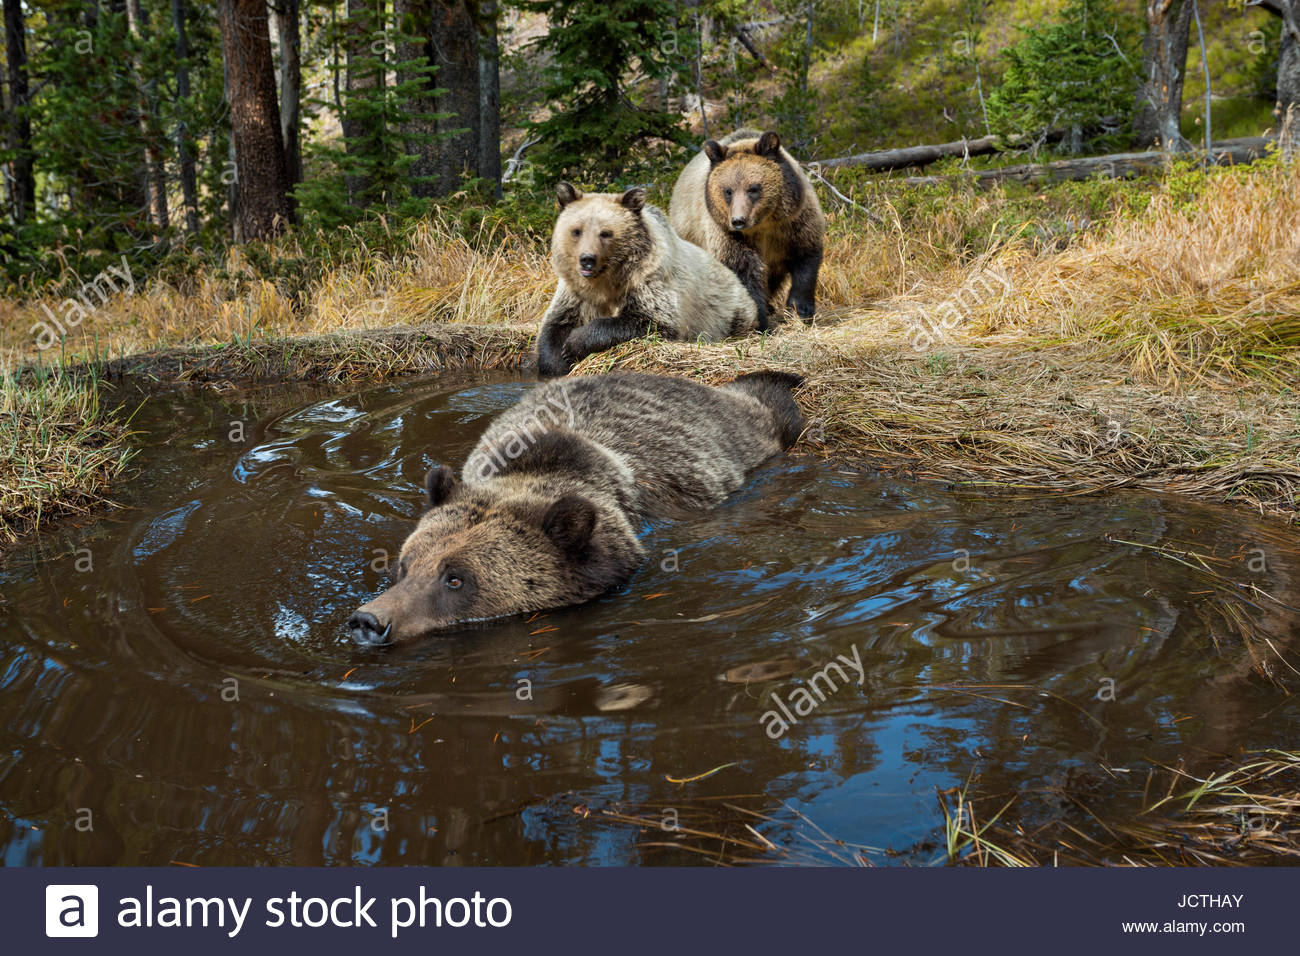 Yellowstone National Park WY. Bear 'Bathtub' spring where Grizzly, Ursus horribilis and Black Bear,Ursus - Stock Image